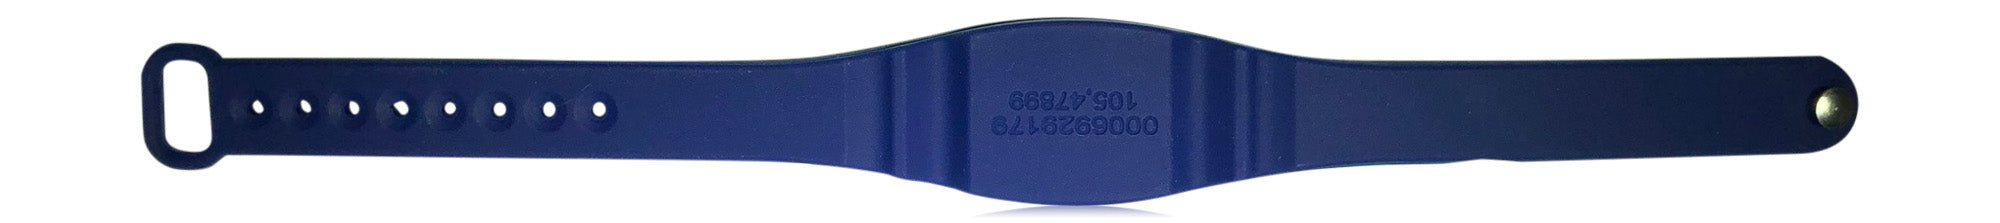 100 Blue Adjustable 26 Bit EM Proximity Wristbands